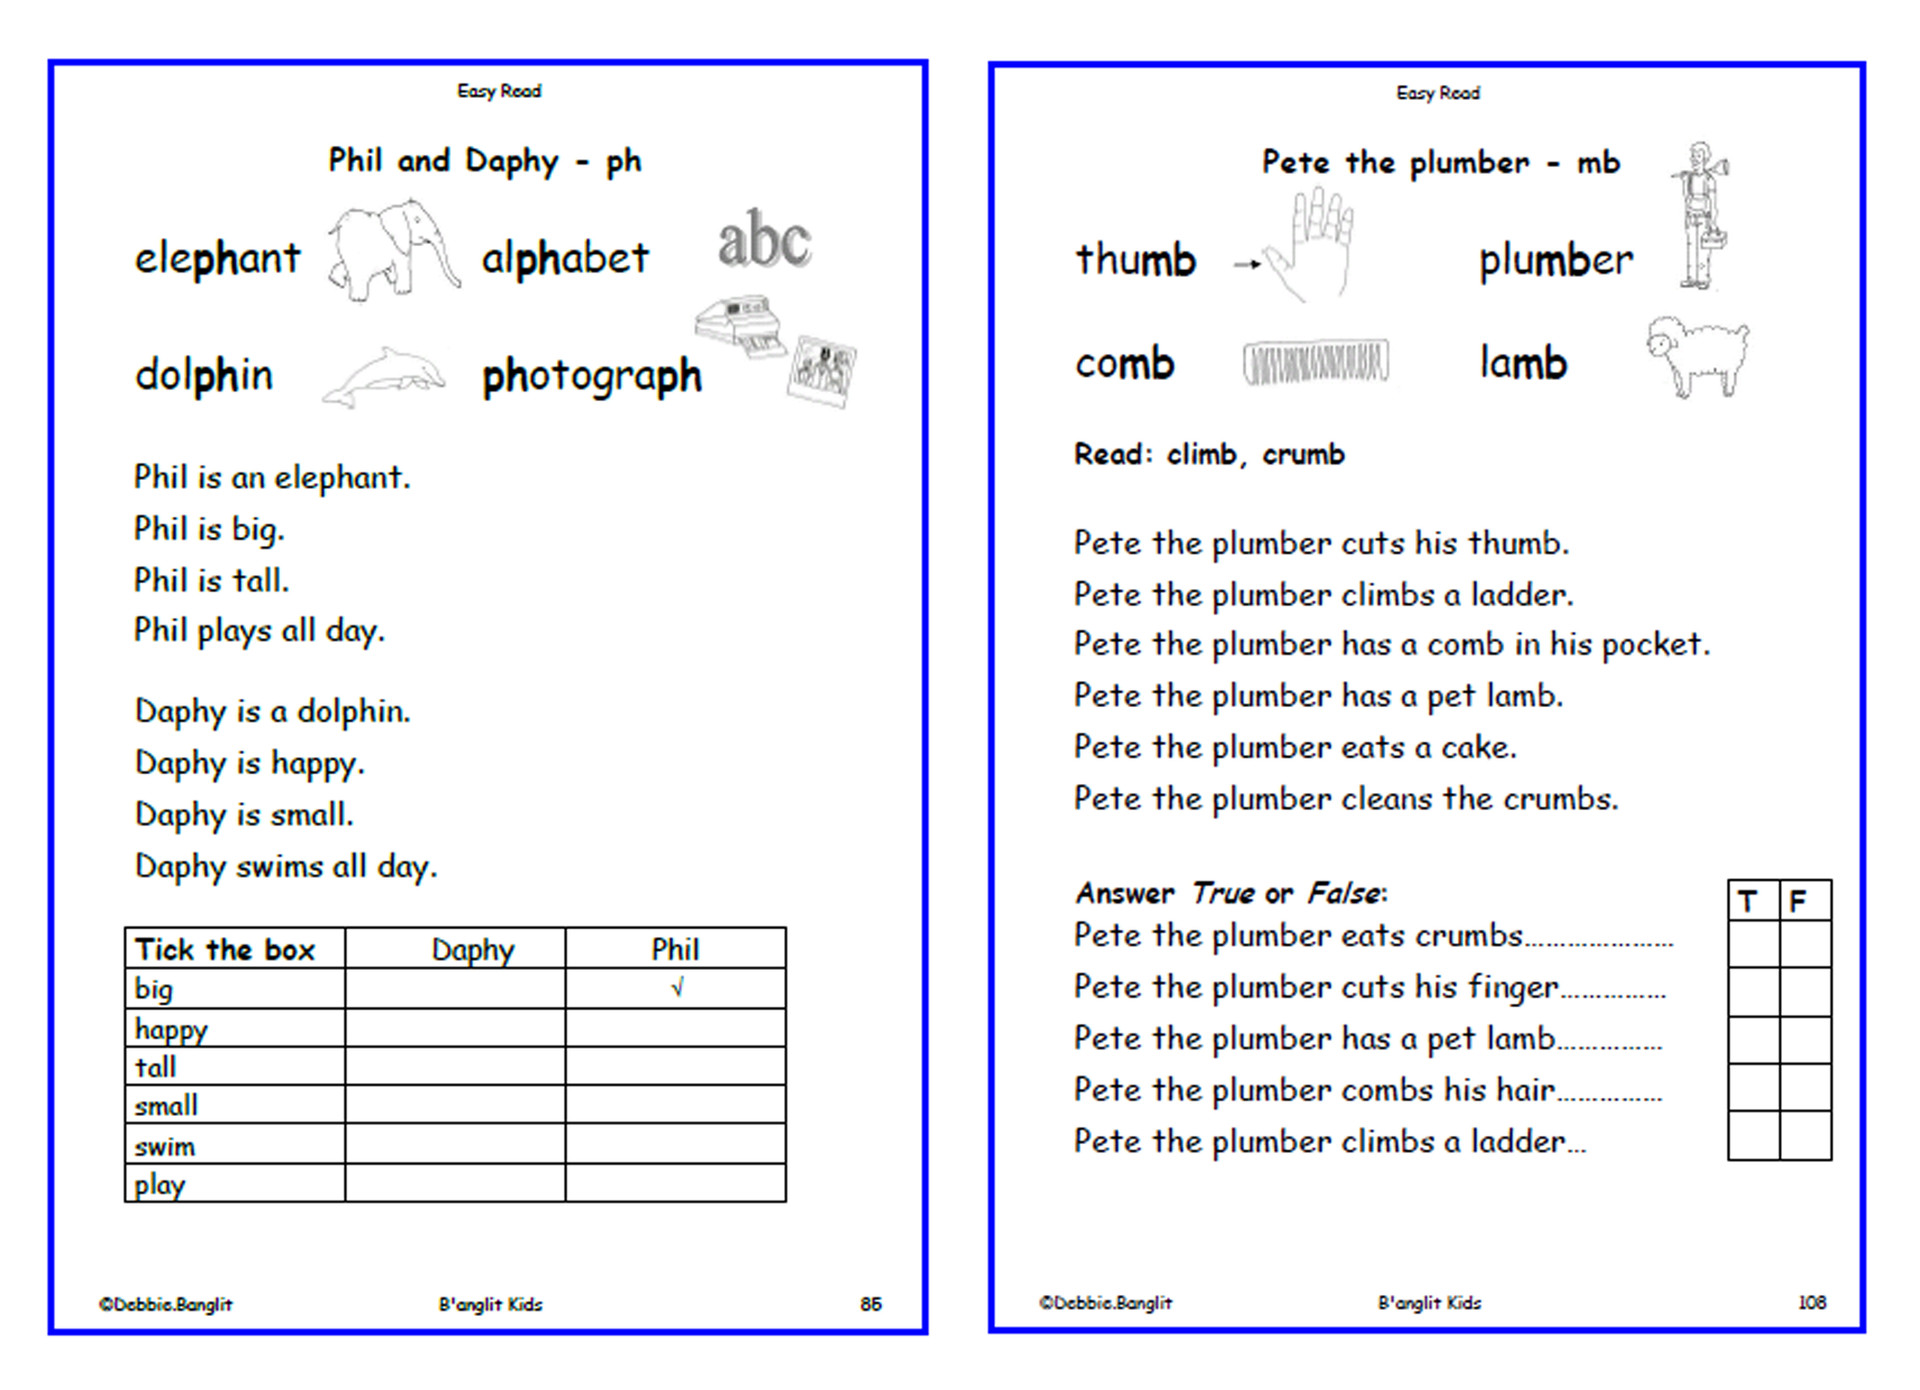 Easy Read - worksheets 85 & 108